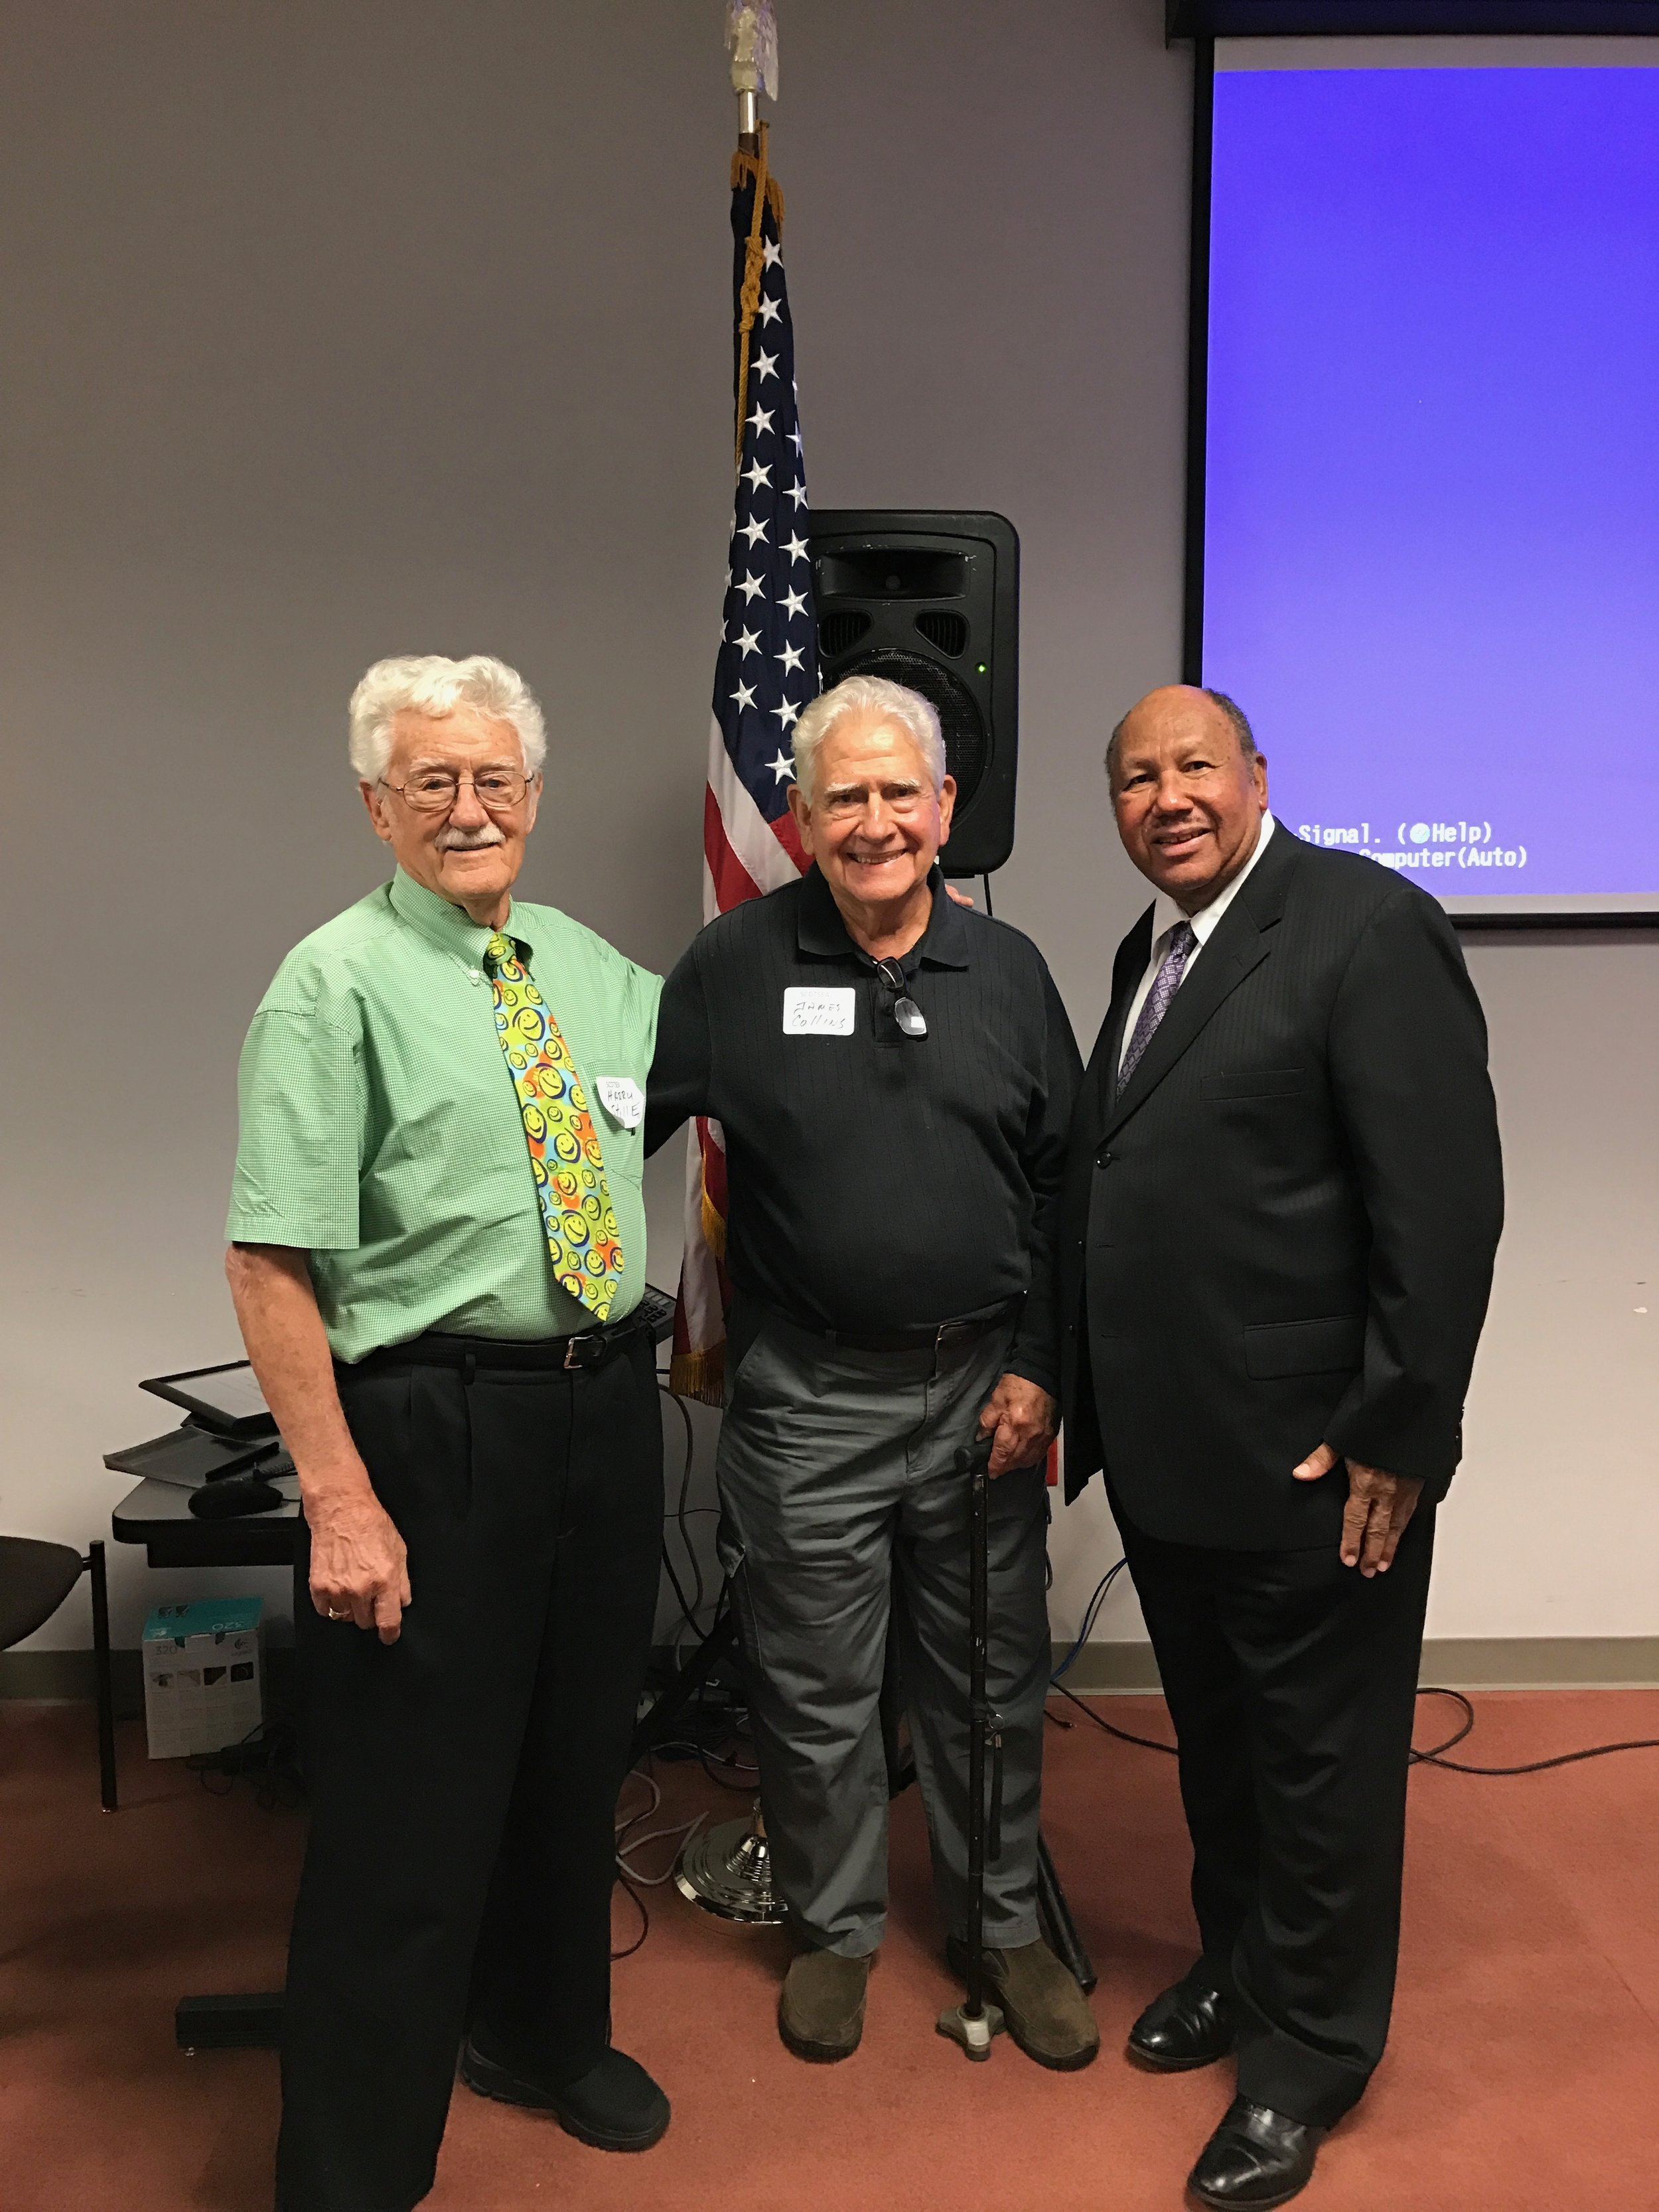 Jim Collins Owner of Auto-Safe Inc with Harry Stille and Albert Neal